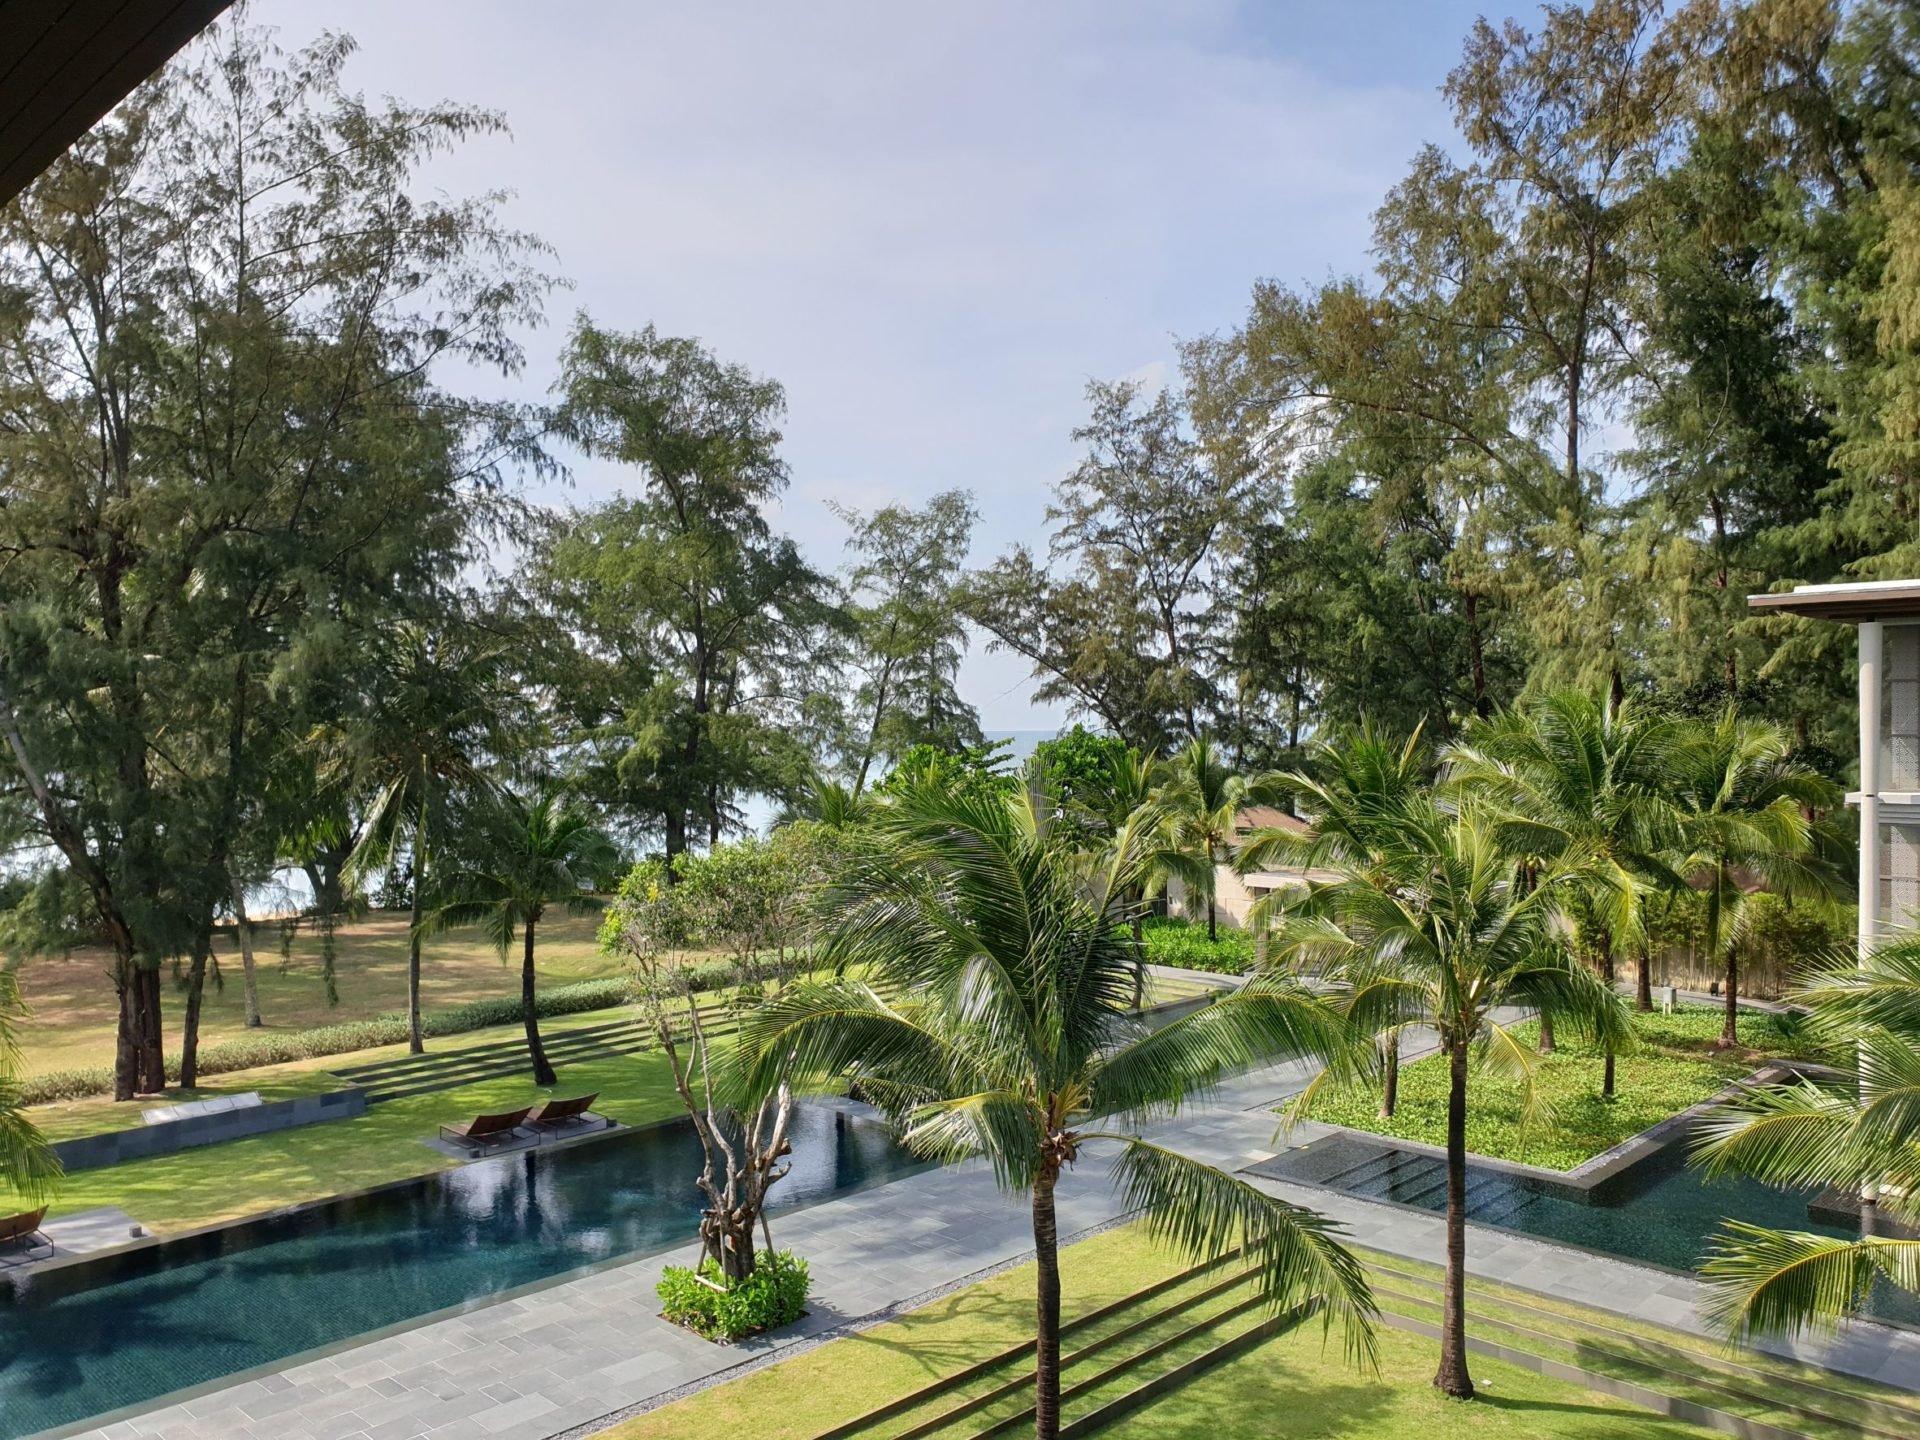 Phuket Real Estate Agency – Mai Khao Beach Phuket Thailand (27)